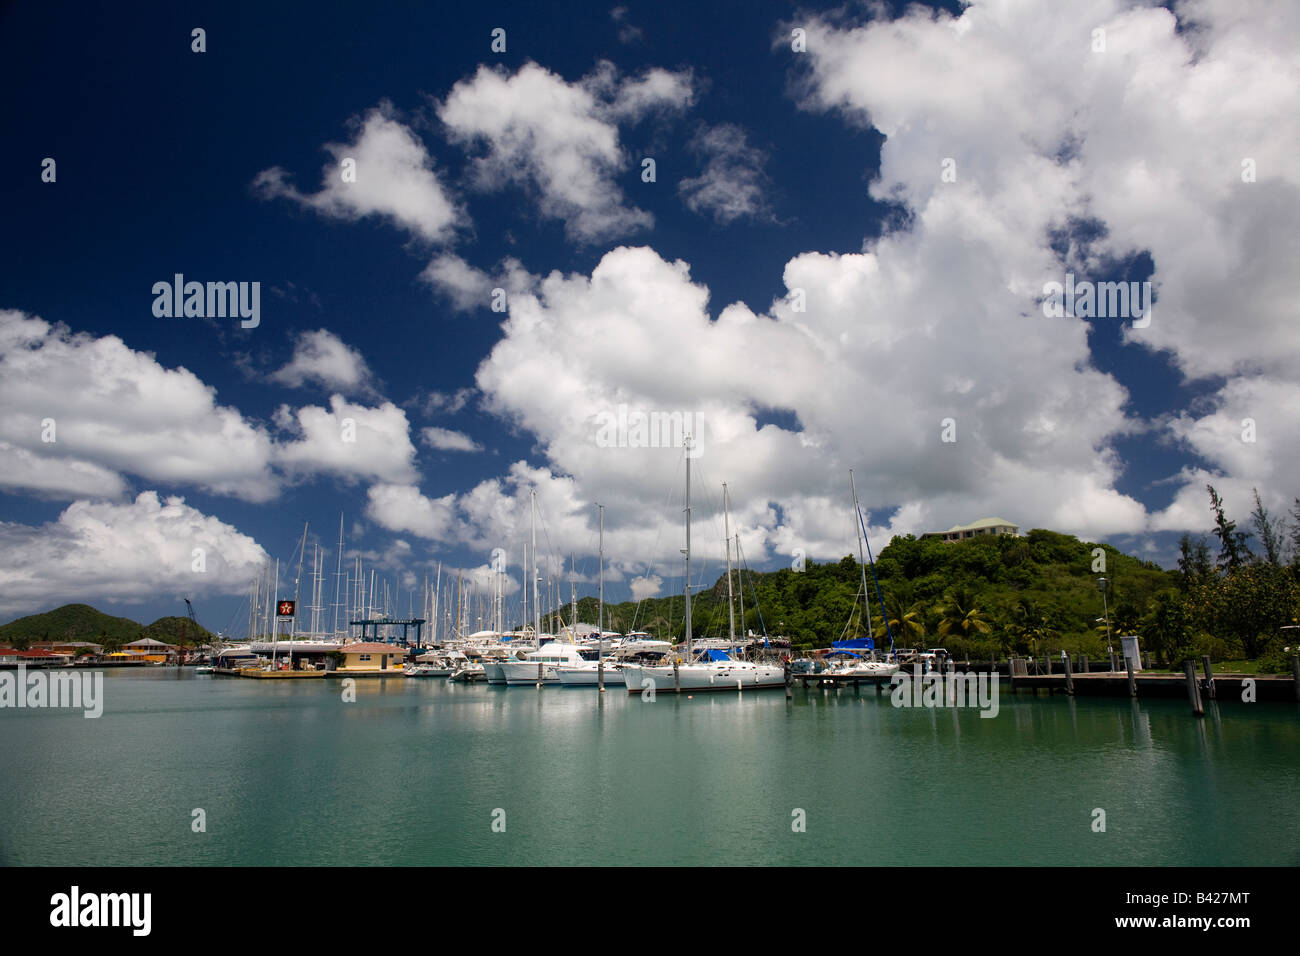 Yachts at anchor in Jolly Harbour Antigua - Stock Image